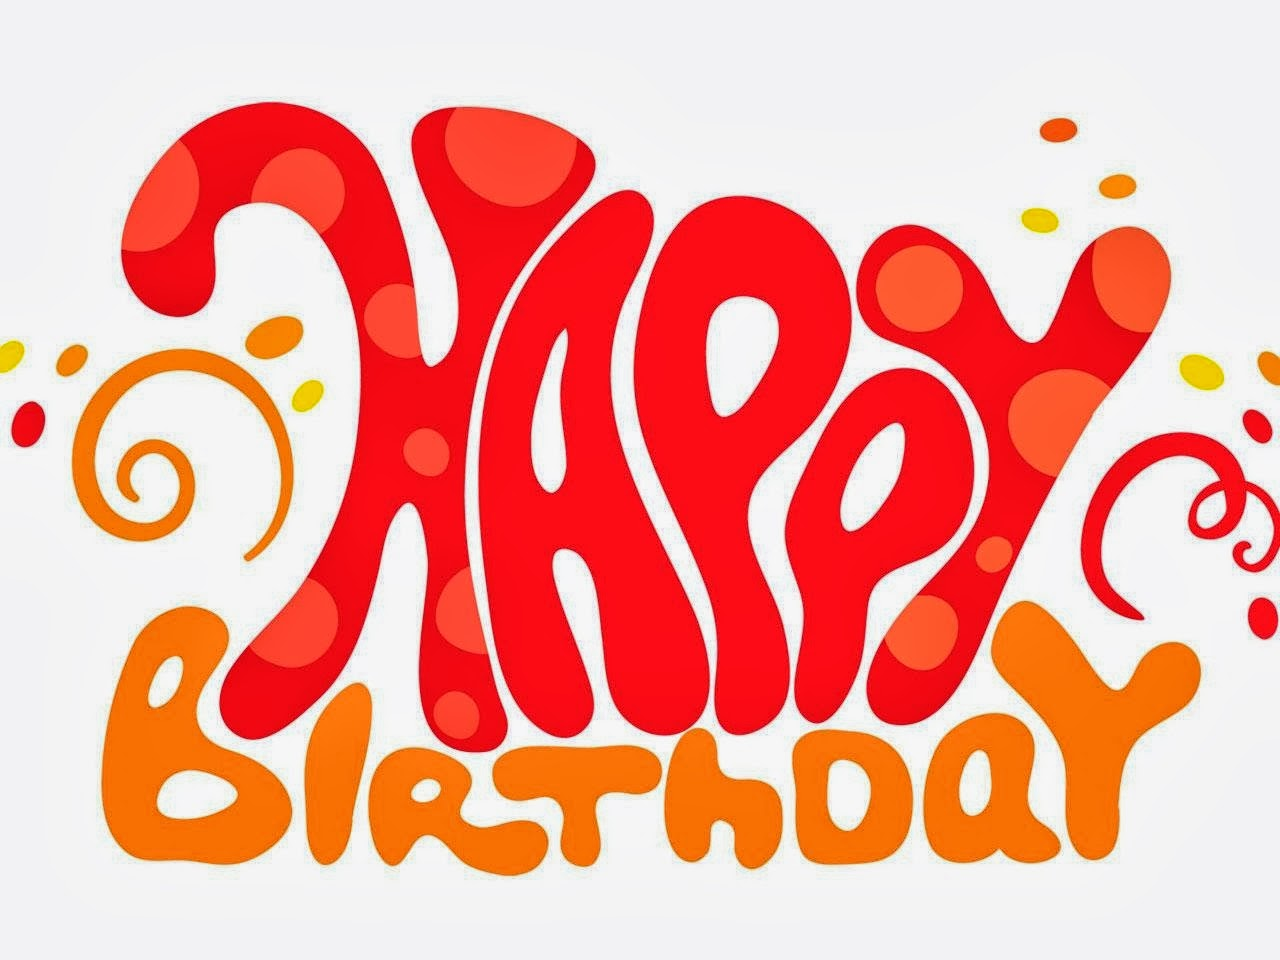 The Berrii Blogger: WISH A.G. A HAPPY BIRTHDAY